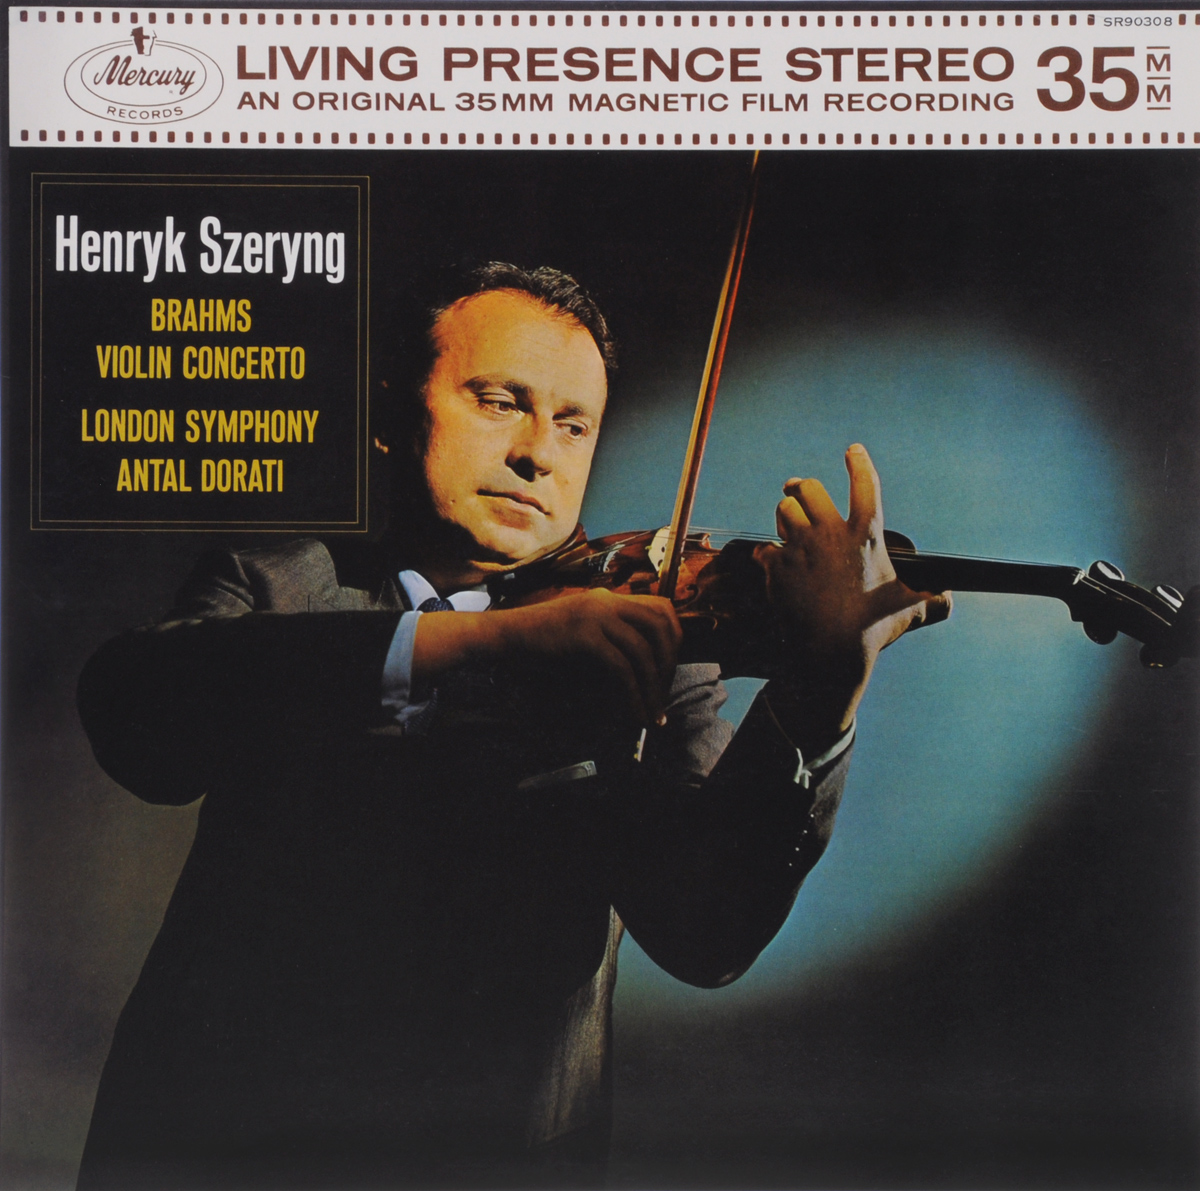 Генри Шеринг,Антал Дорати,The London Symphony Orchestra Henryk Szeryng, Antal Dorati, London Symphony Orchestra. Brahms. Violin Concerto (LP) генри шеринг чарльз райнер szeryng plays kreisler and other tresures for the violin